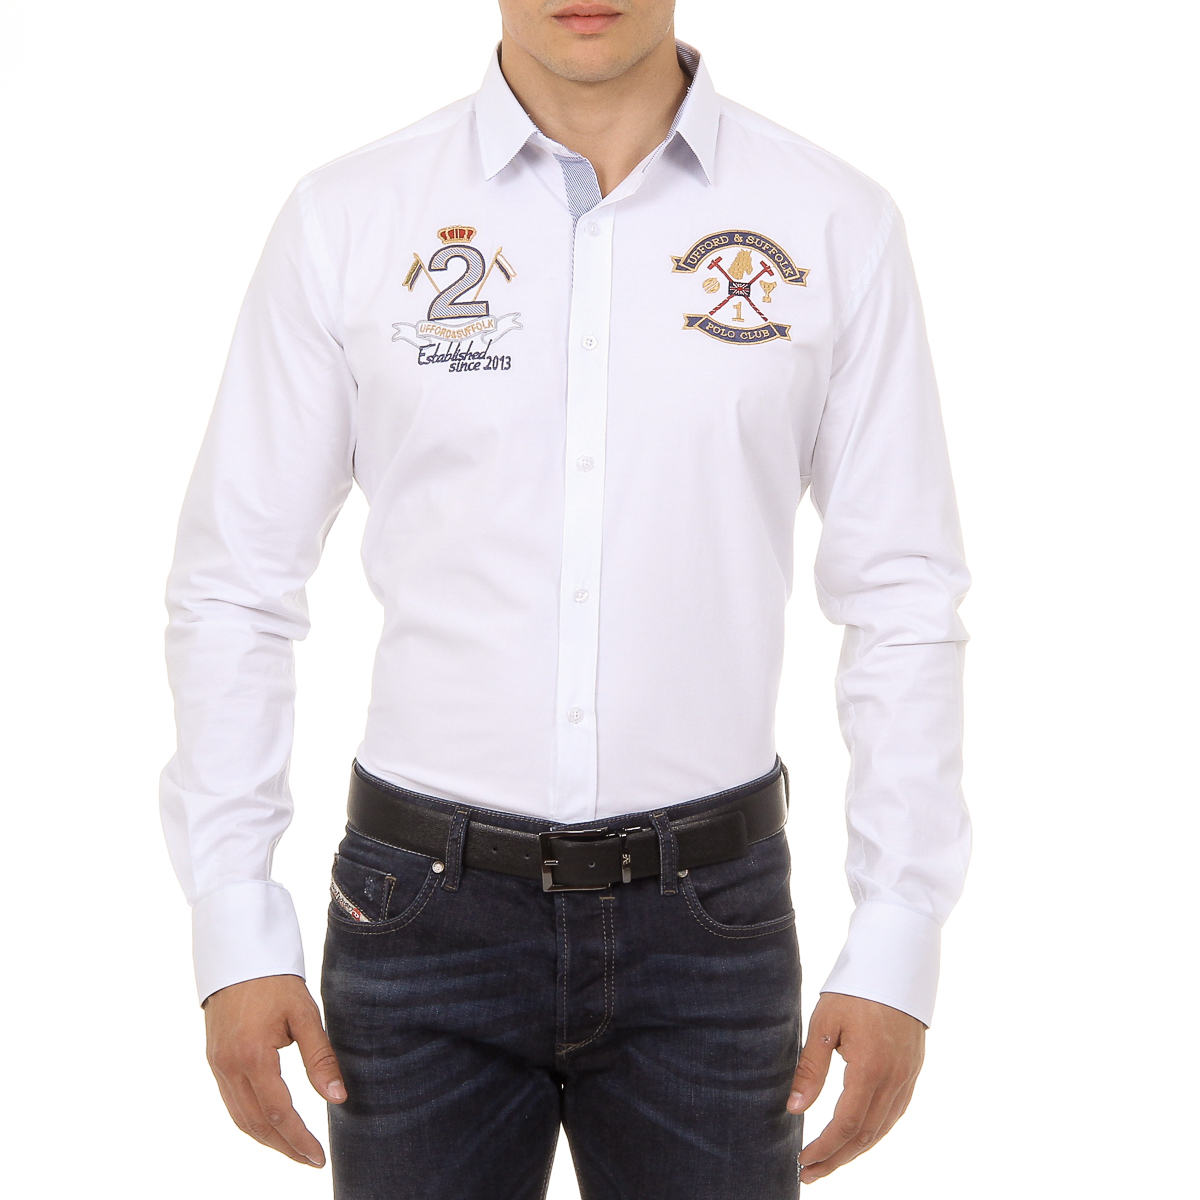 Primary image for Ufford & Suffolk Polo Club Mens Shirt Long Sleeves US010 WHITE